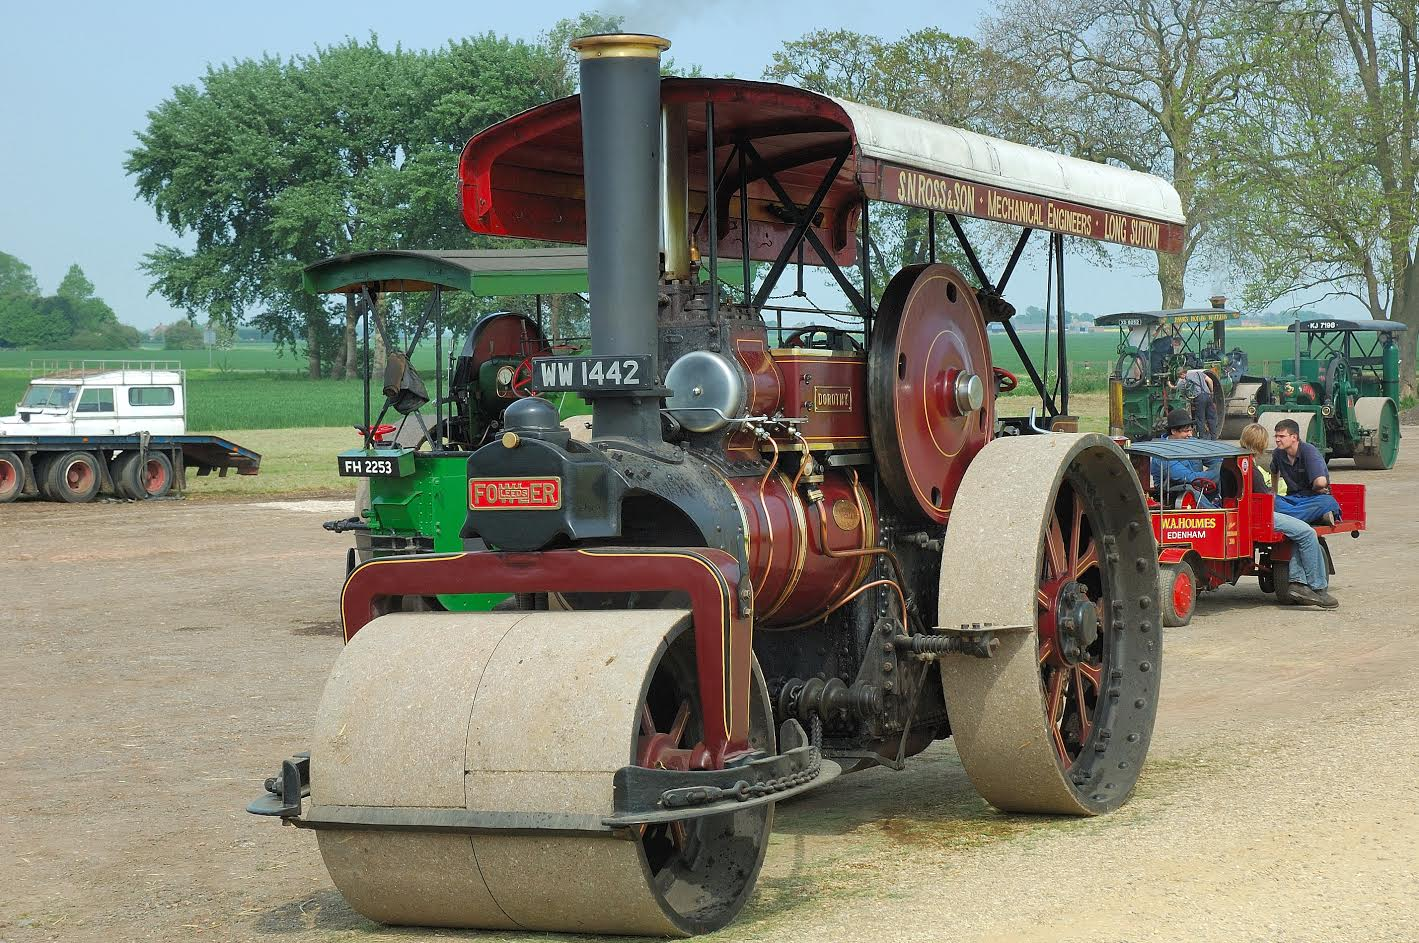 Over £237,000 spent on four steam engines